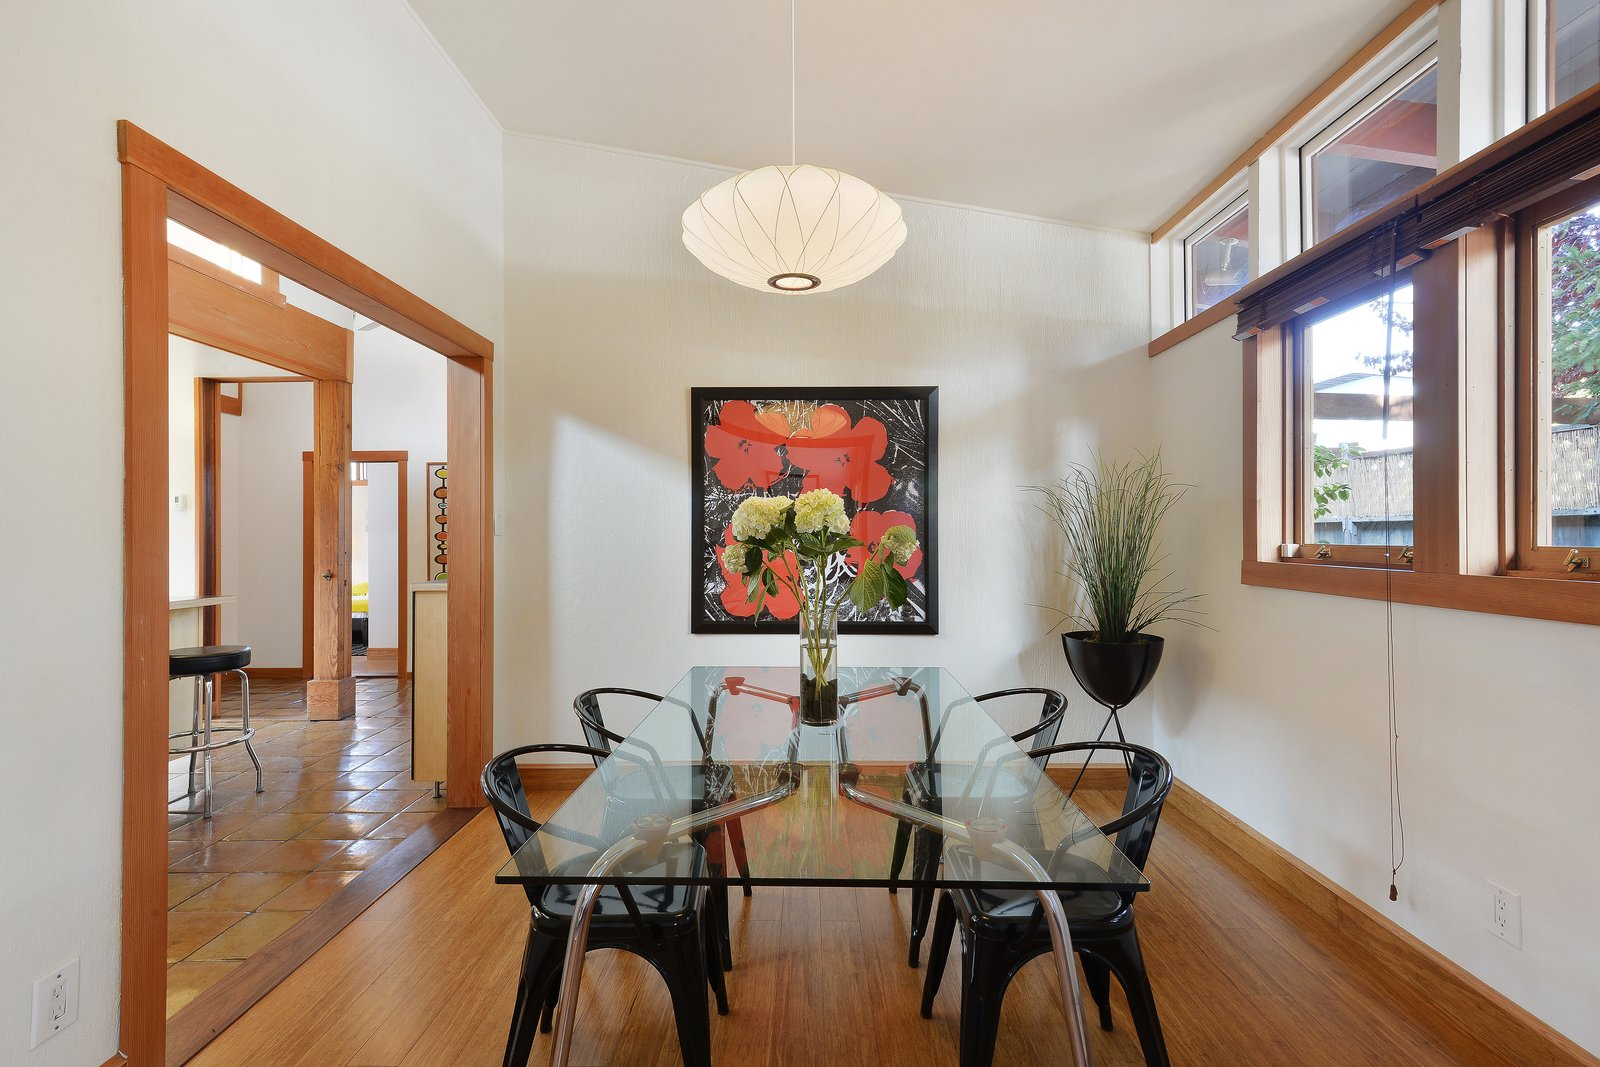 Artists Need Apply: This Midcentury Home Comes With an All-Purpose Workshop for $949K - Photo 4 of 12